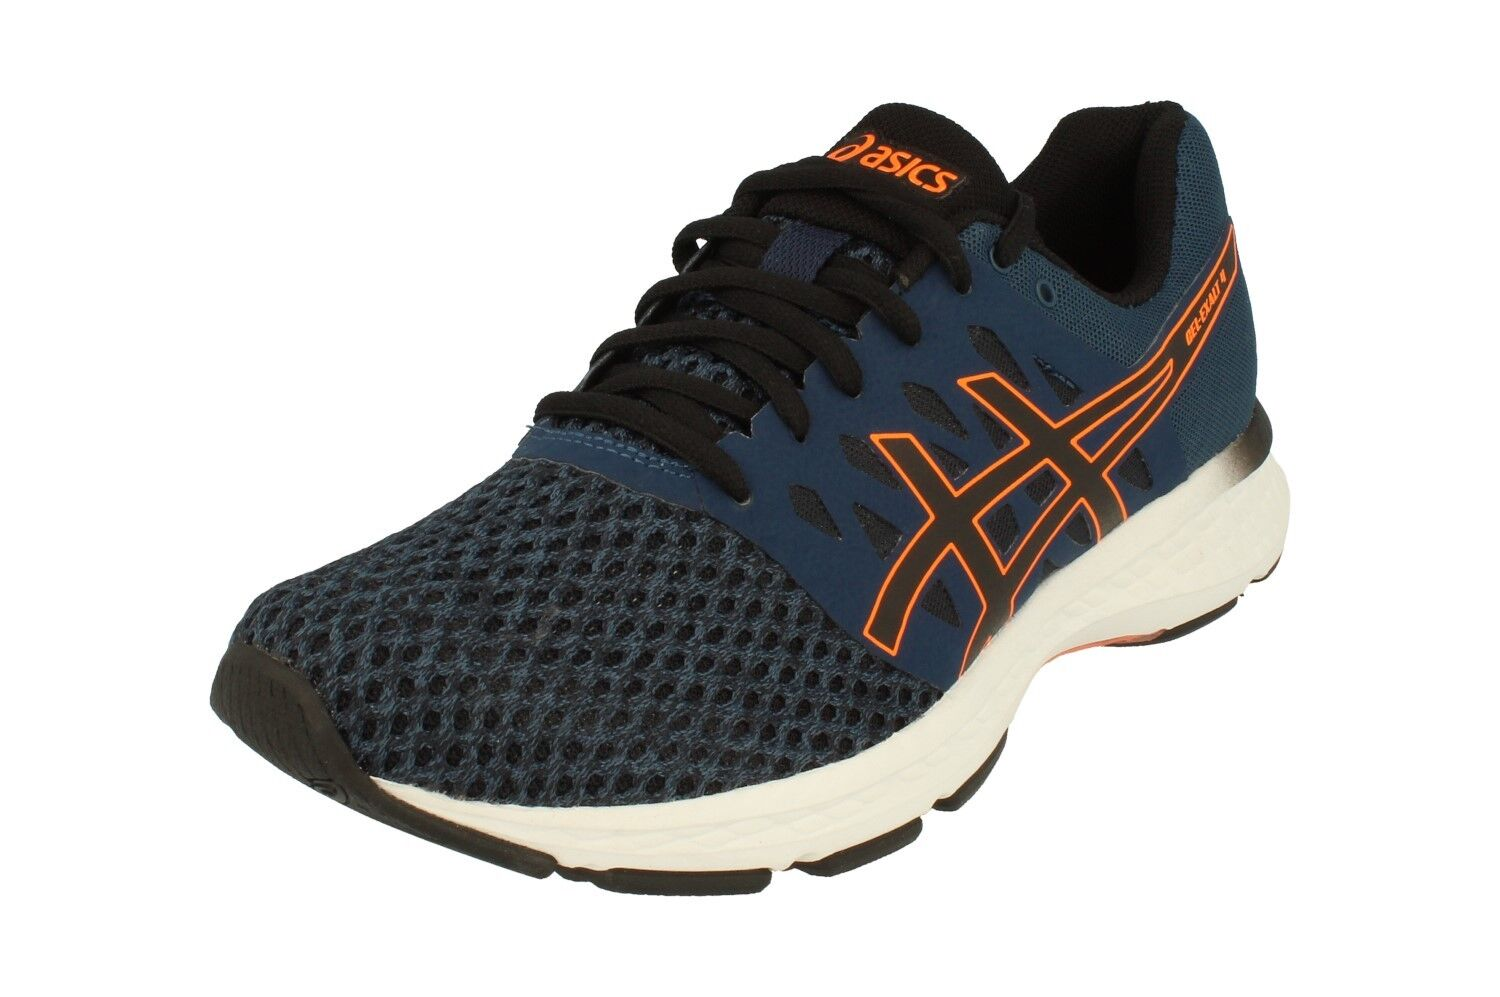 Asics Gel-Exalt 4 Mens Running Trainers T7E0N Sneakers shoes 4990